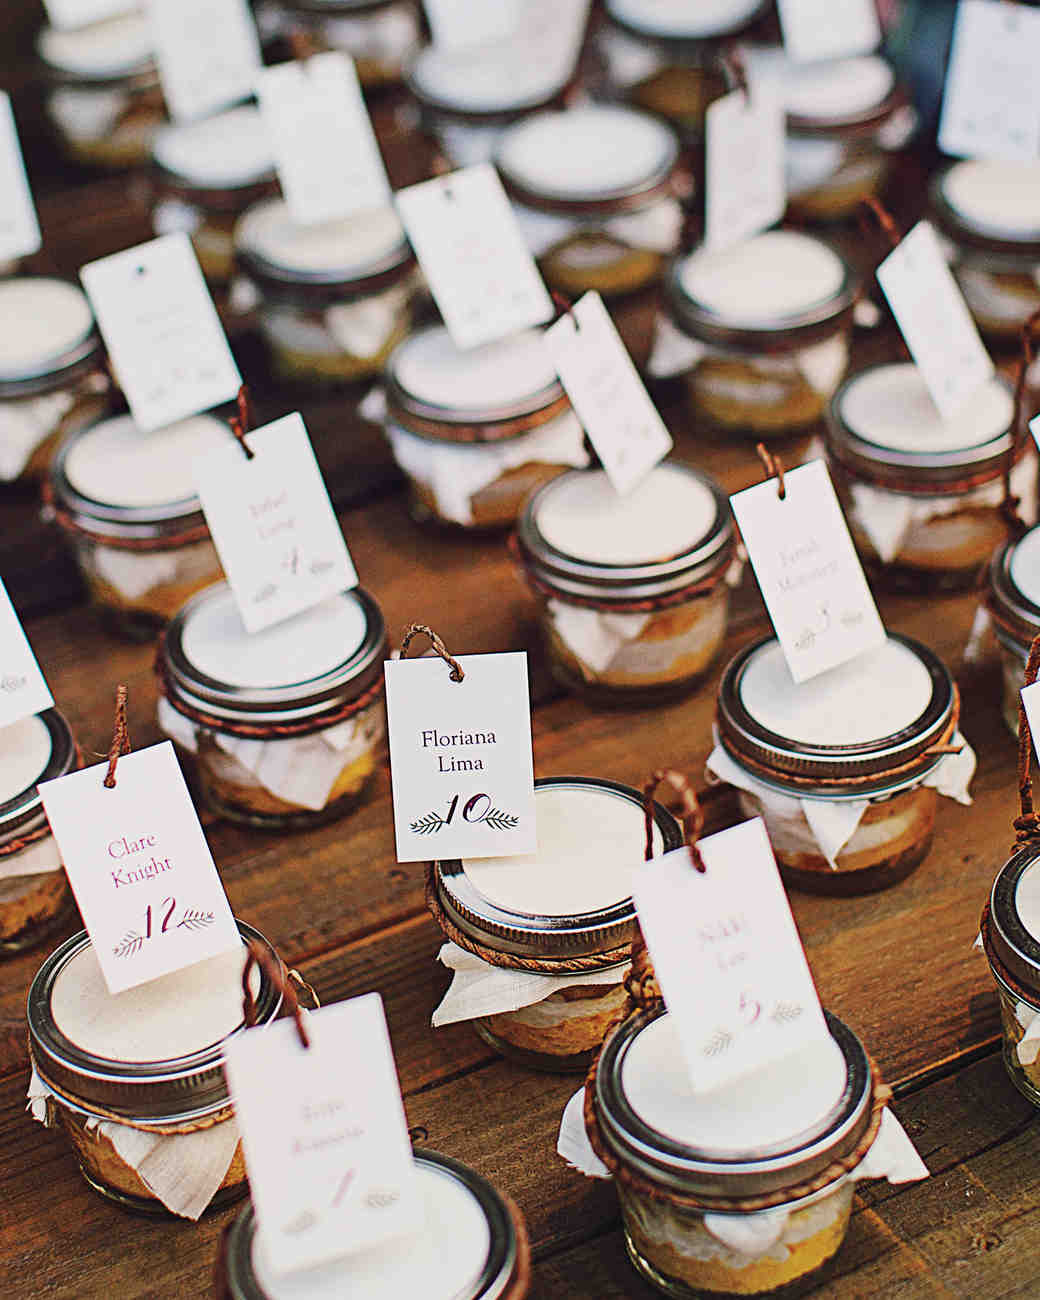 32 unique ideas for winter wedding favors martha stewart for Wedding supplies